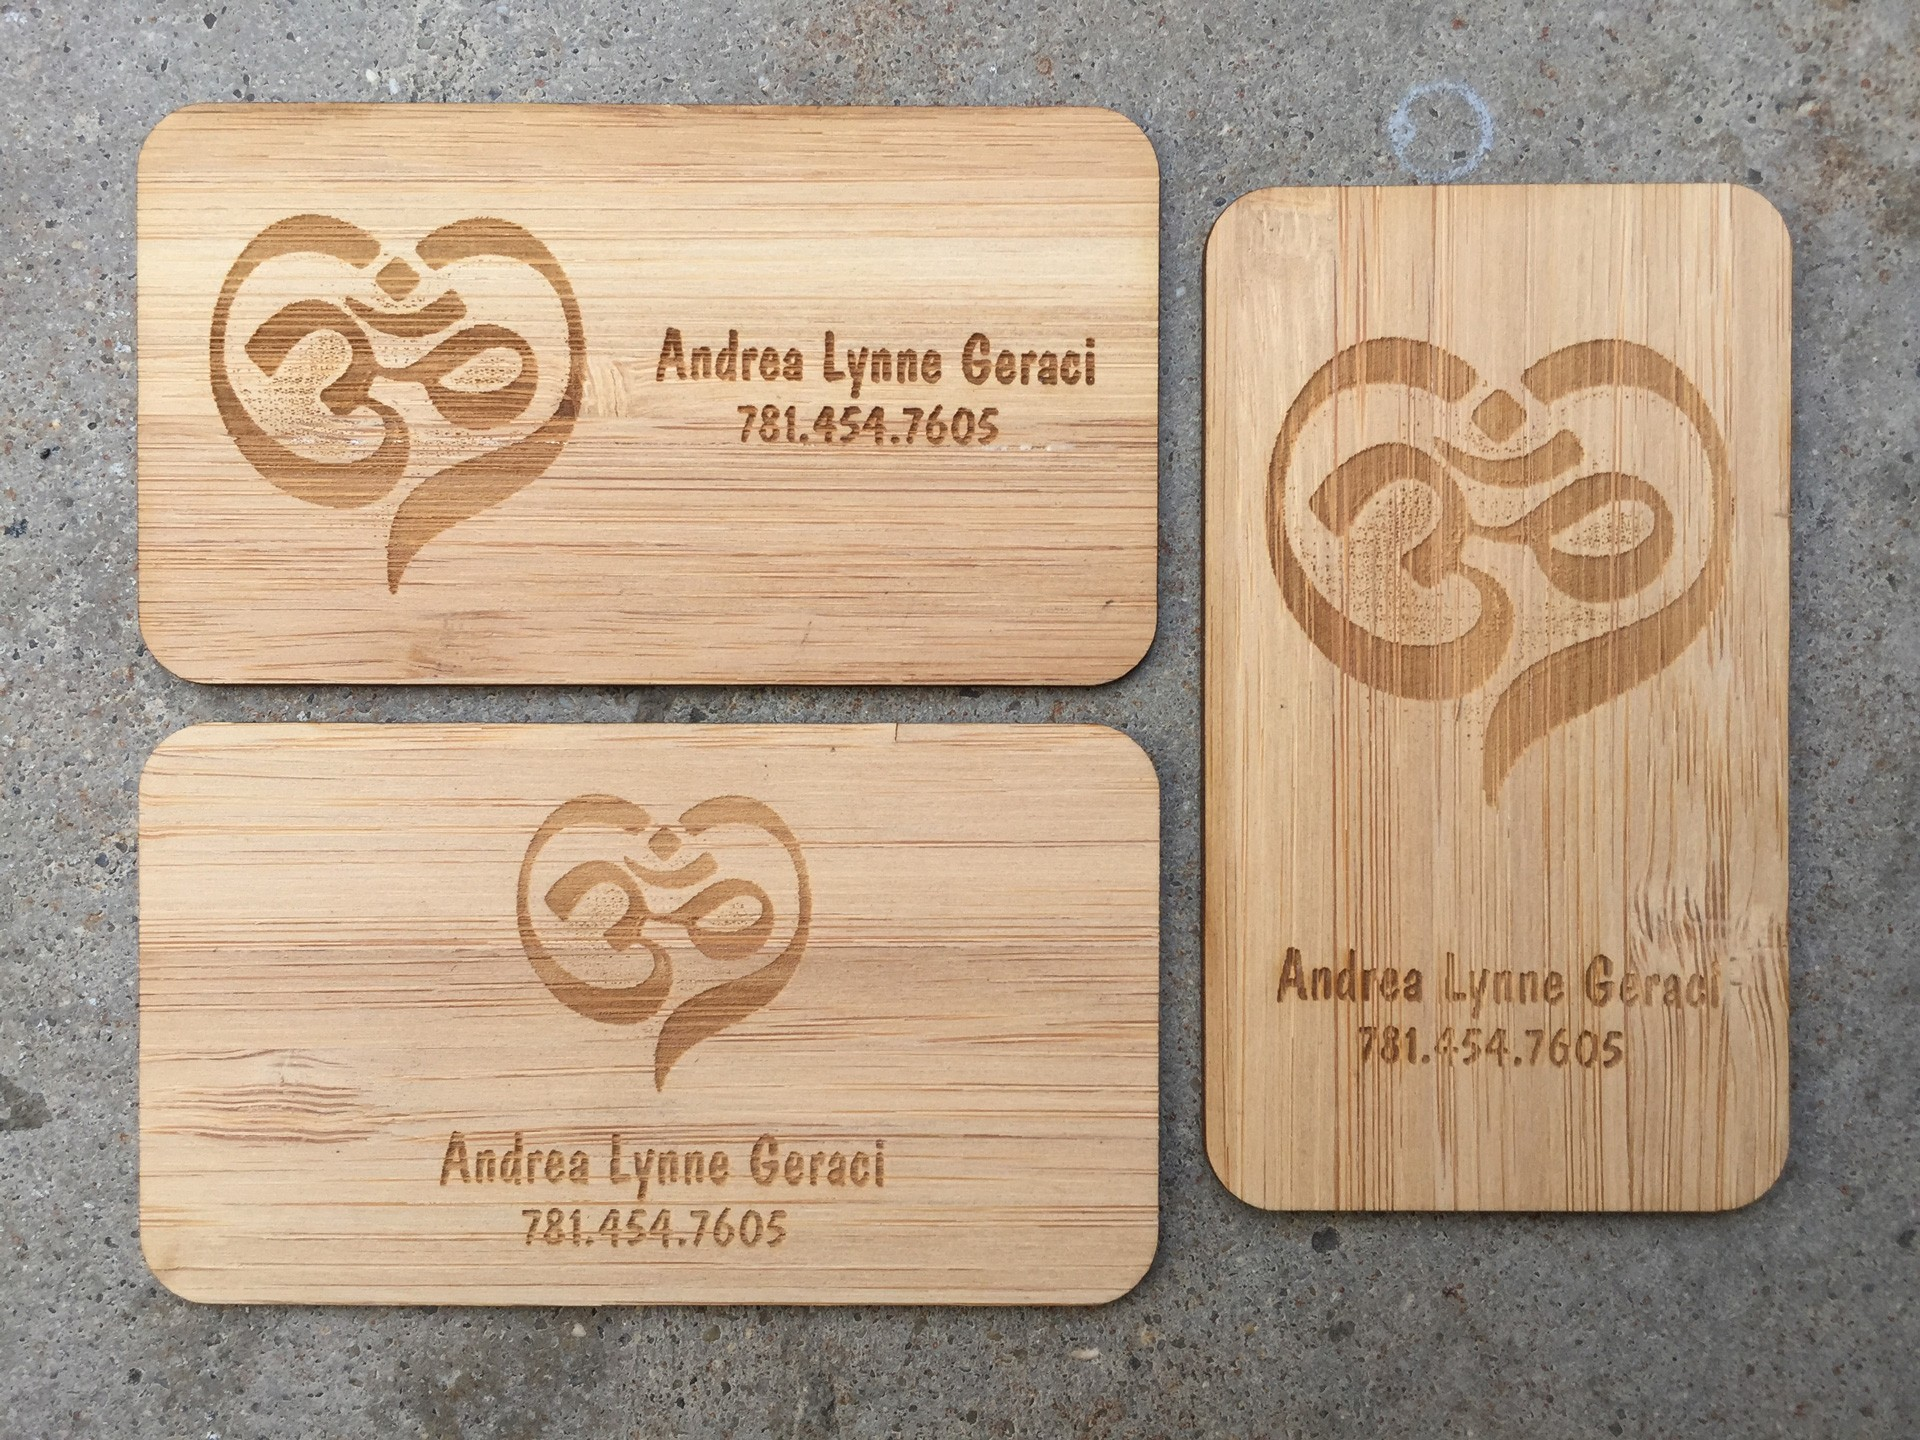 500 Bamboo Business Cards